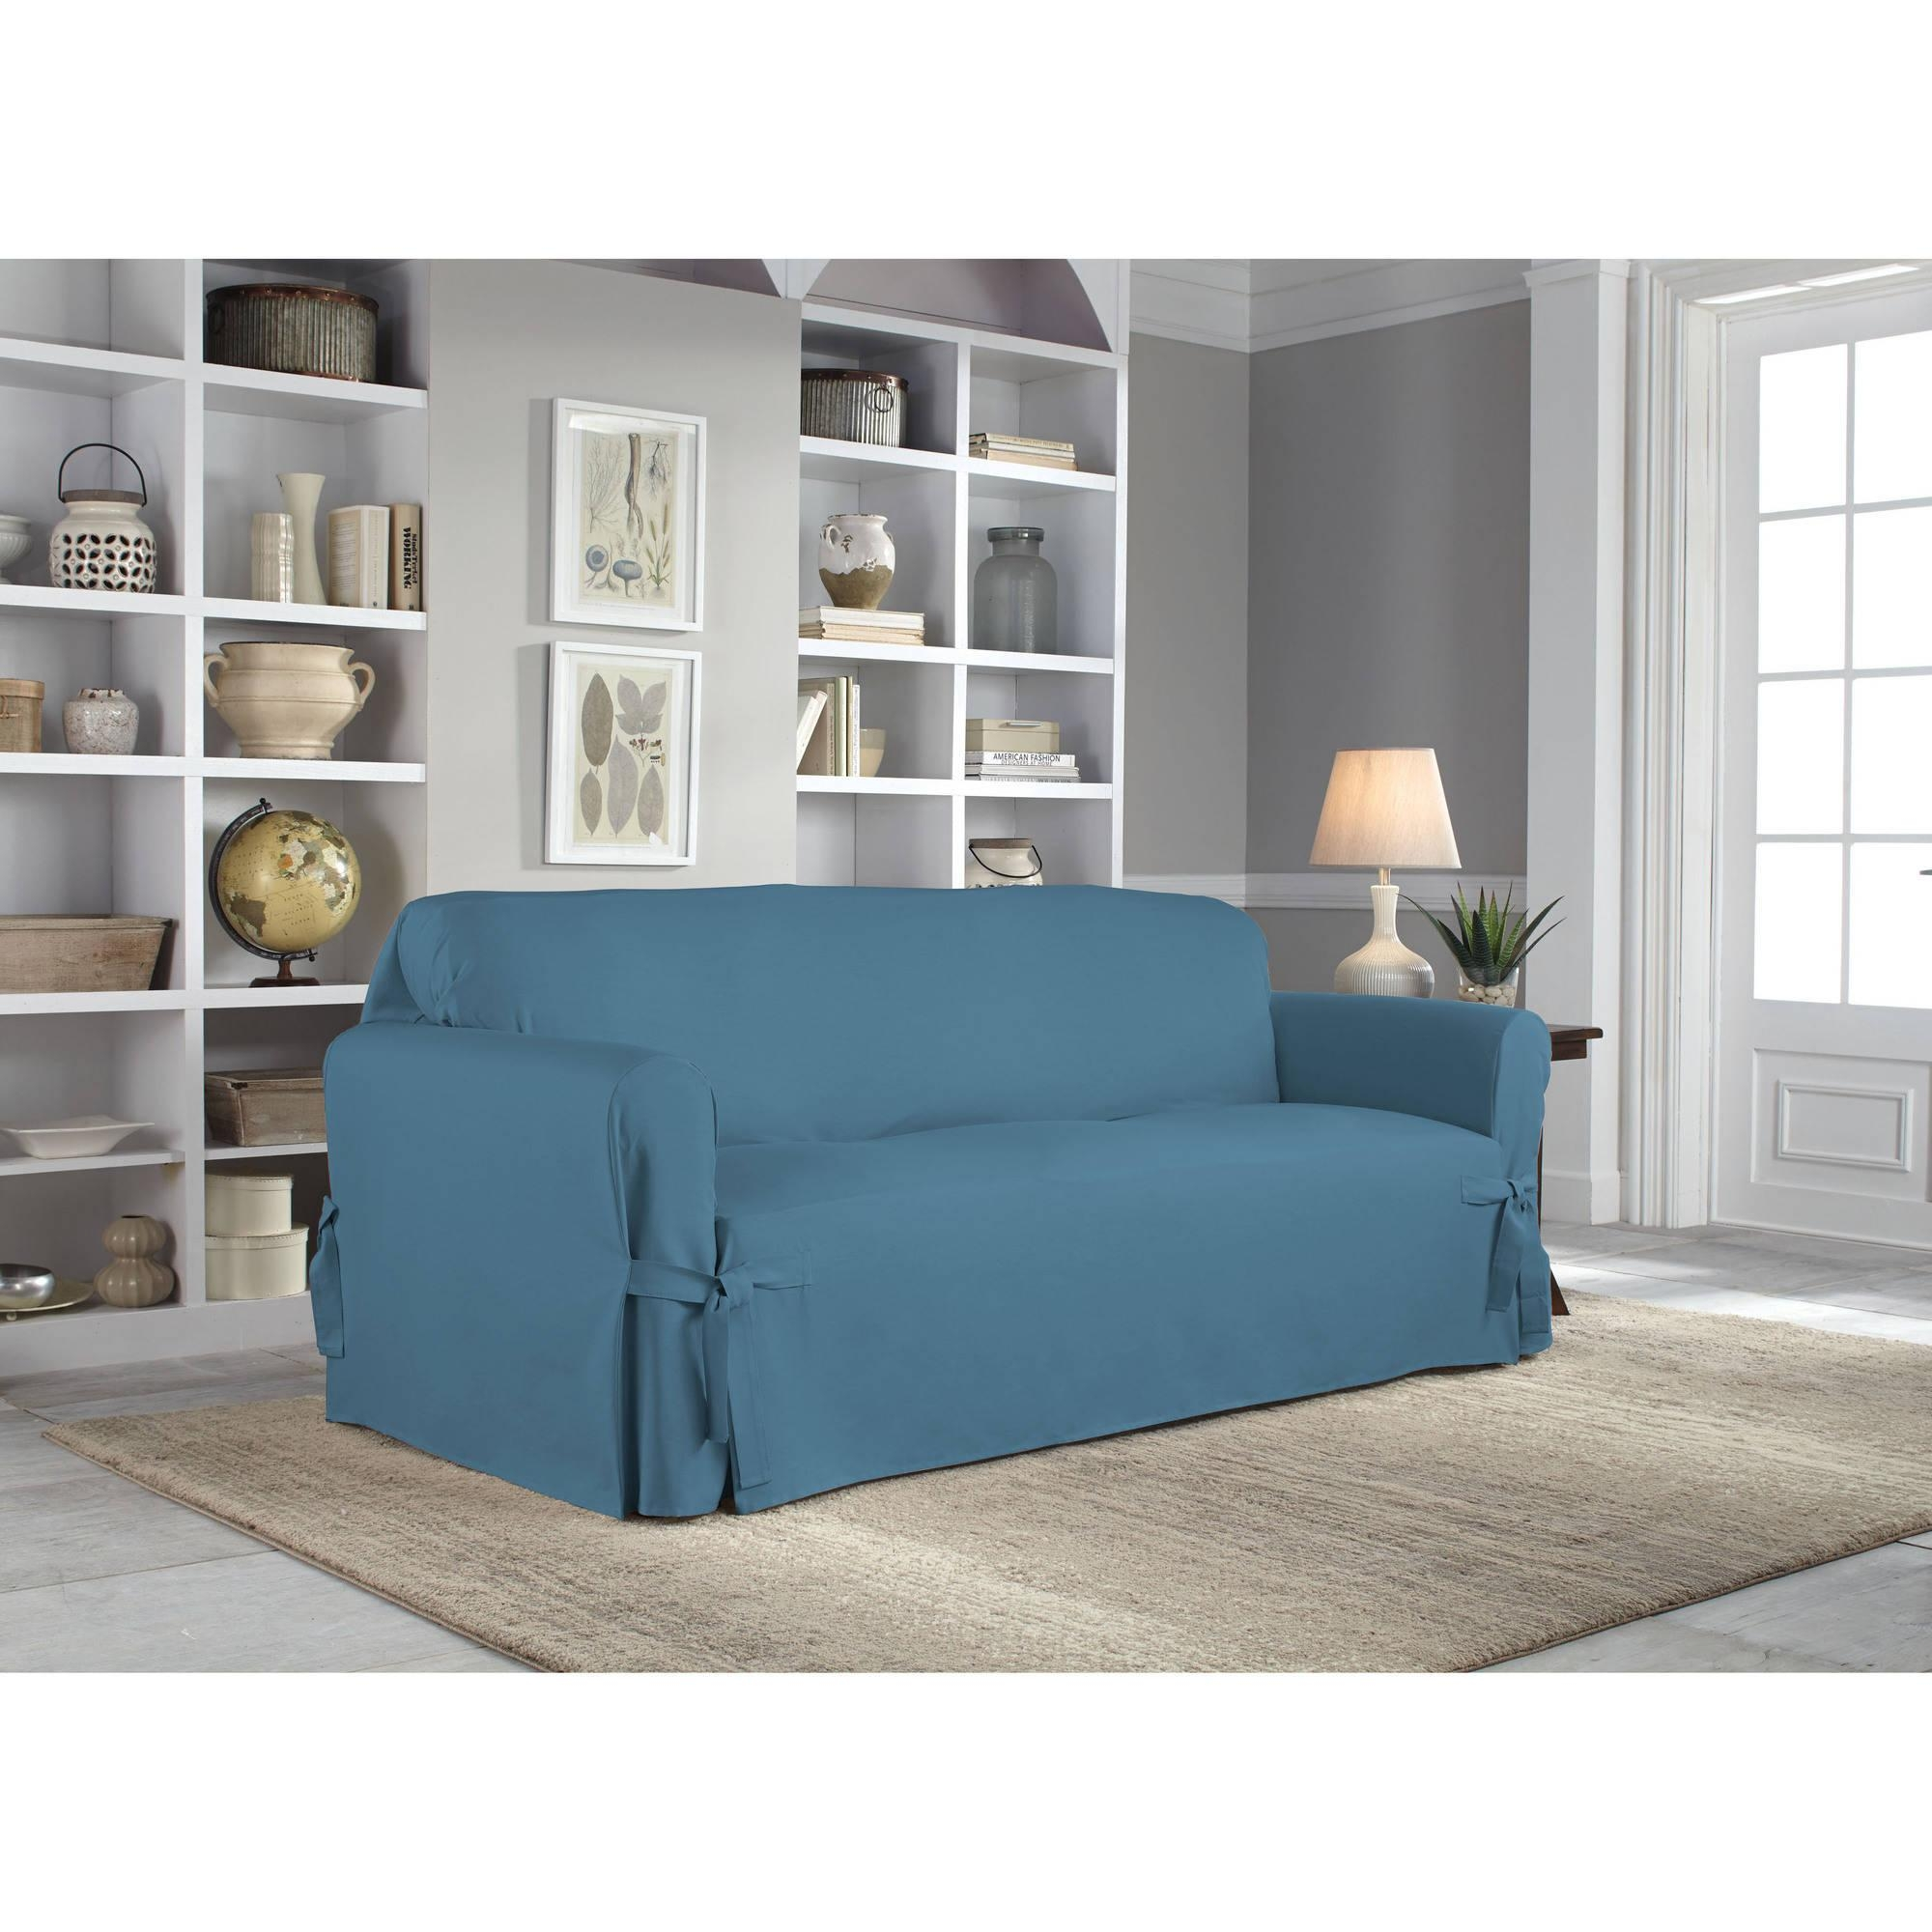 Slipcover Furniture Living Room: 20 Collection Of Denim Sofa Slipcovers